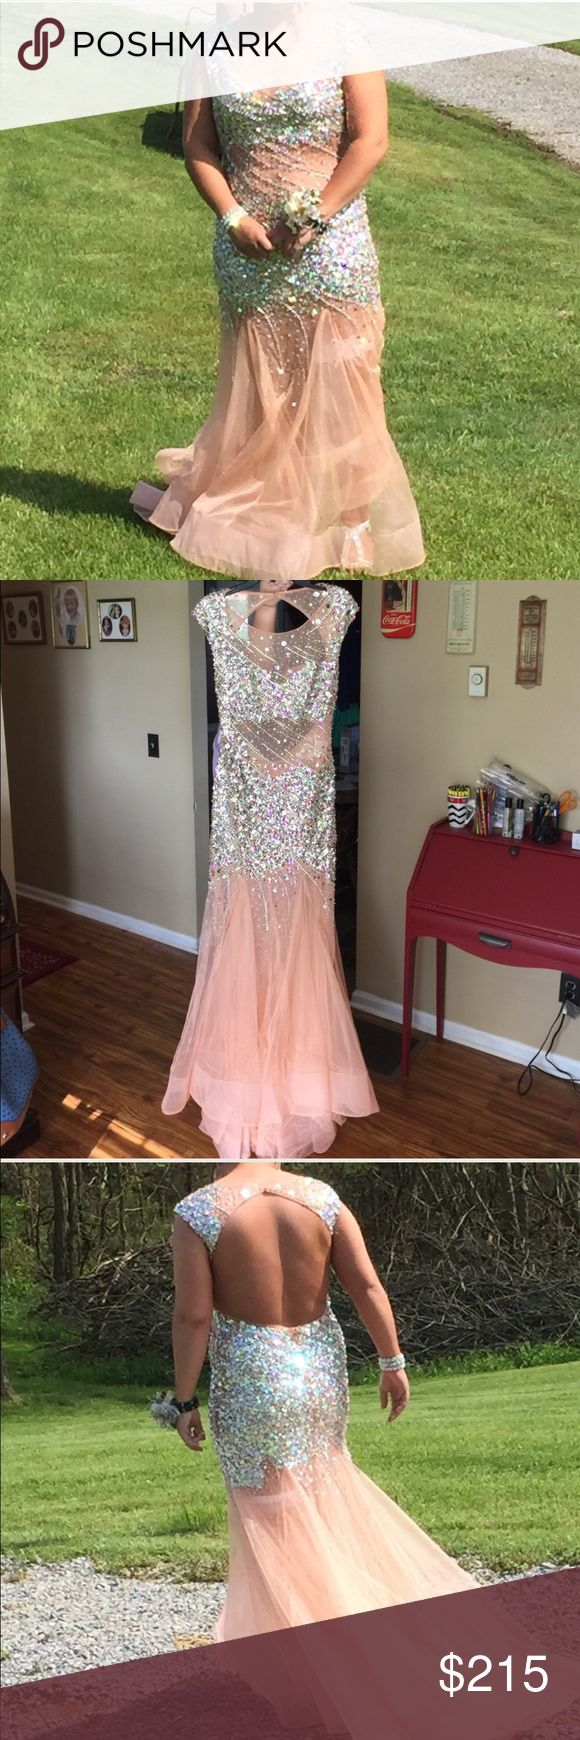 """Amazing Blush Prom (Prom dress) Peach colored prom dress """"Blush Prom"""" brand size 10. This dress is beautiful with iridescent beading all over. This dress has a sheer see through stomach area with a full open back. It also has sewn in bra padding. Only been worn once! Blush Prom Dresses Prom"""